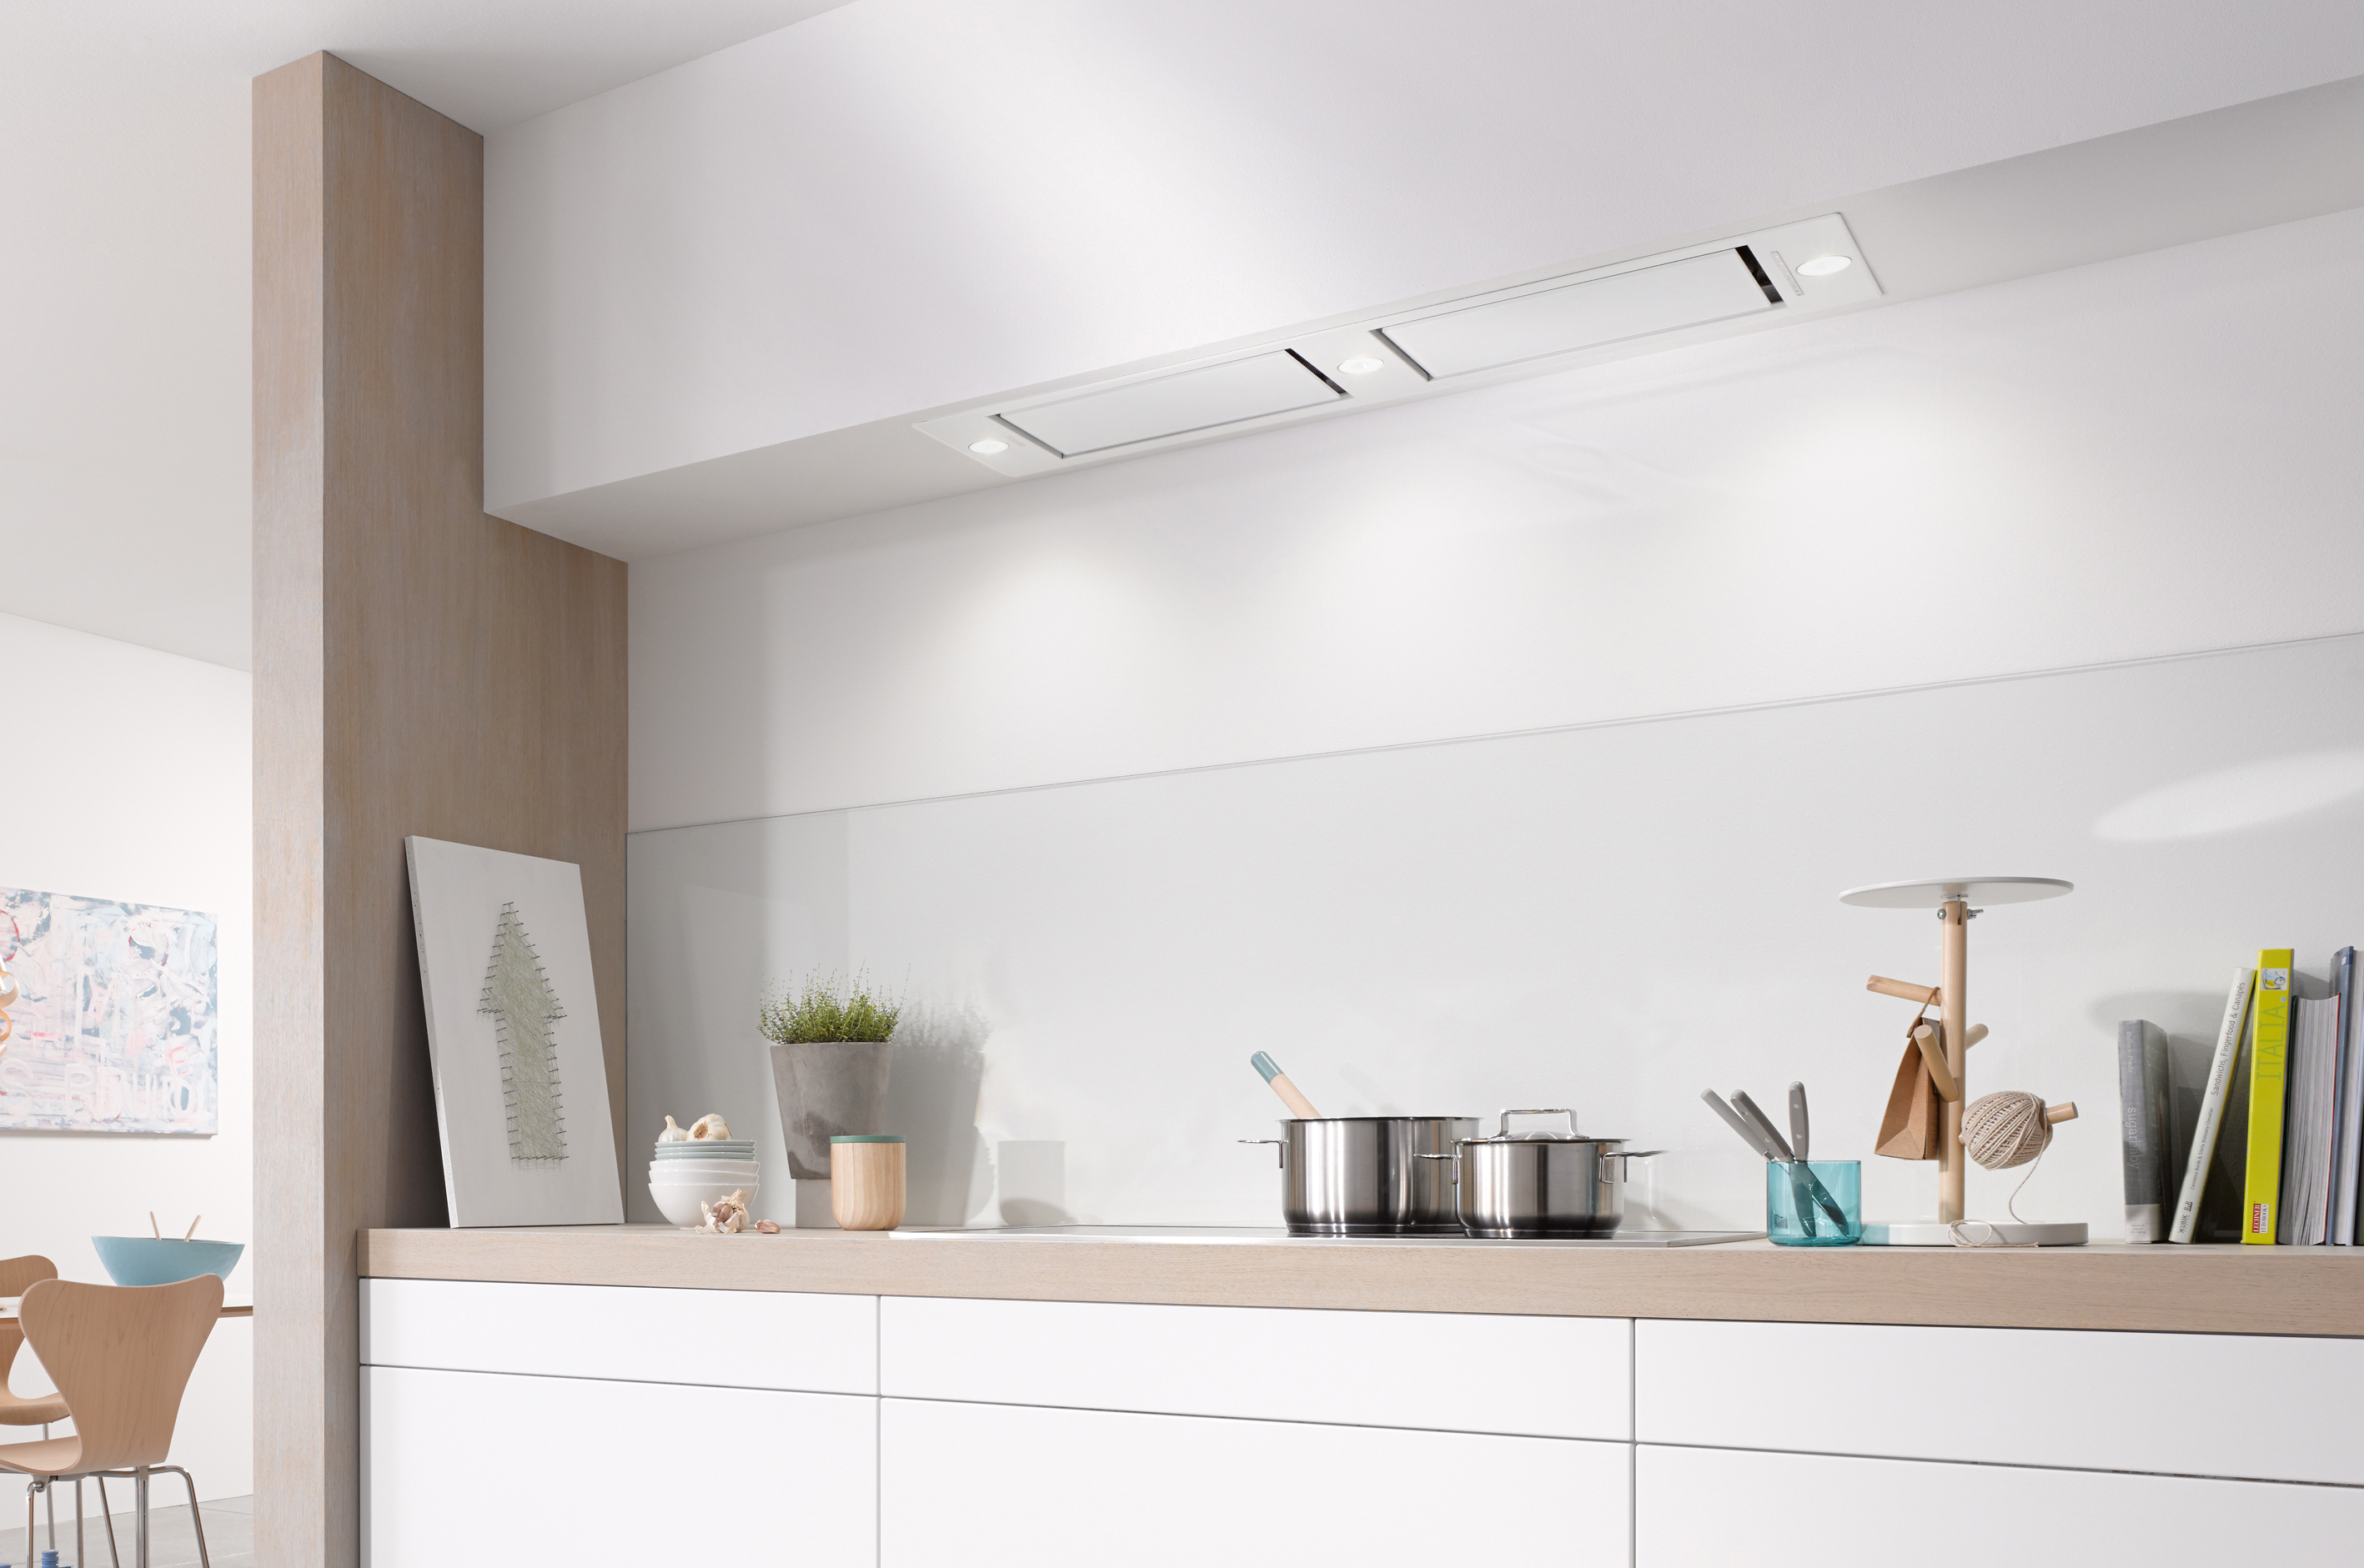 Integrated extractor fan kitchen